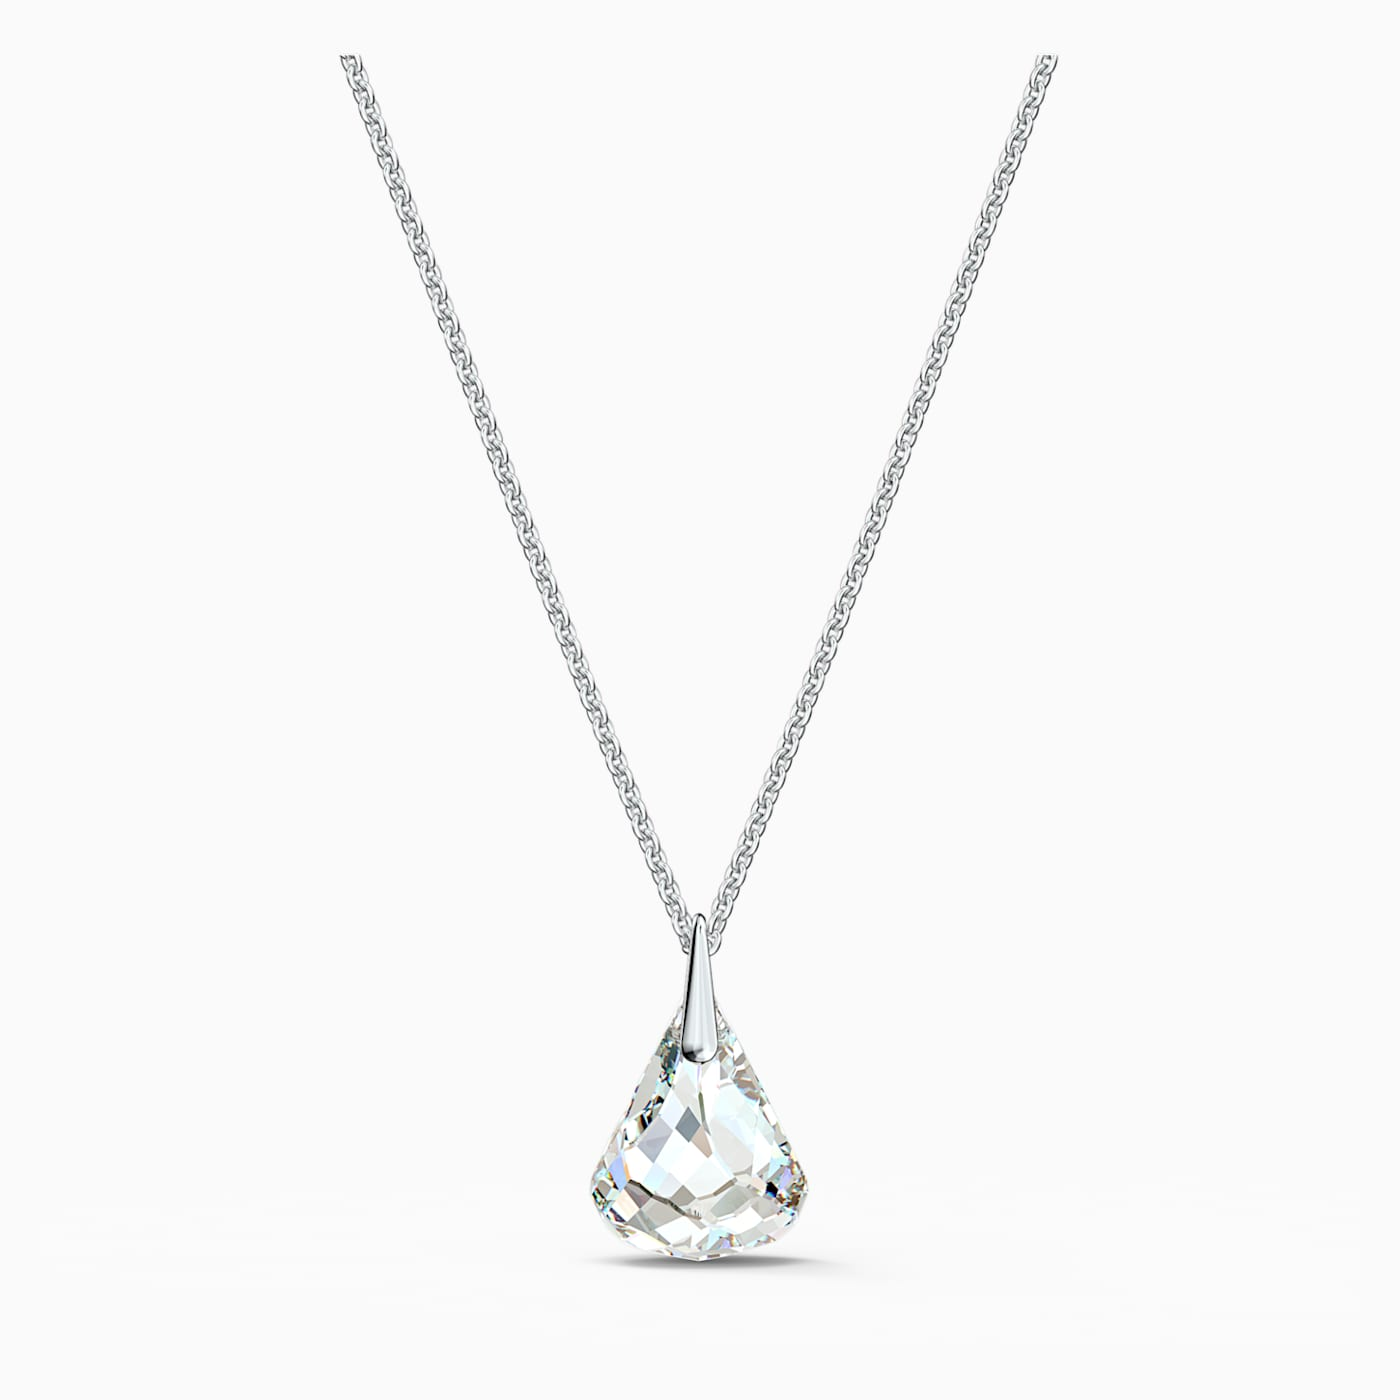 Swarovski Spirit Necklace in Rhodium